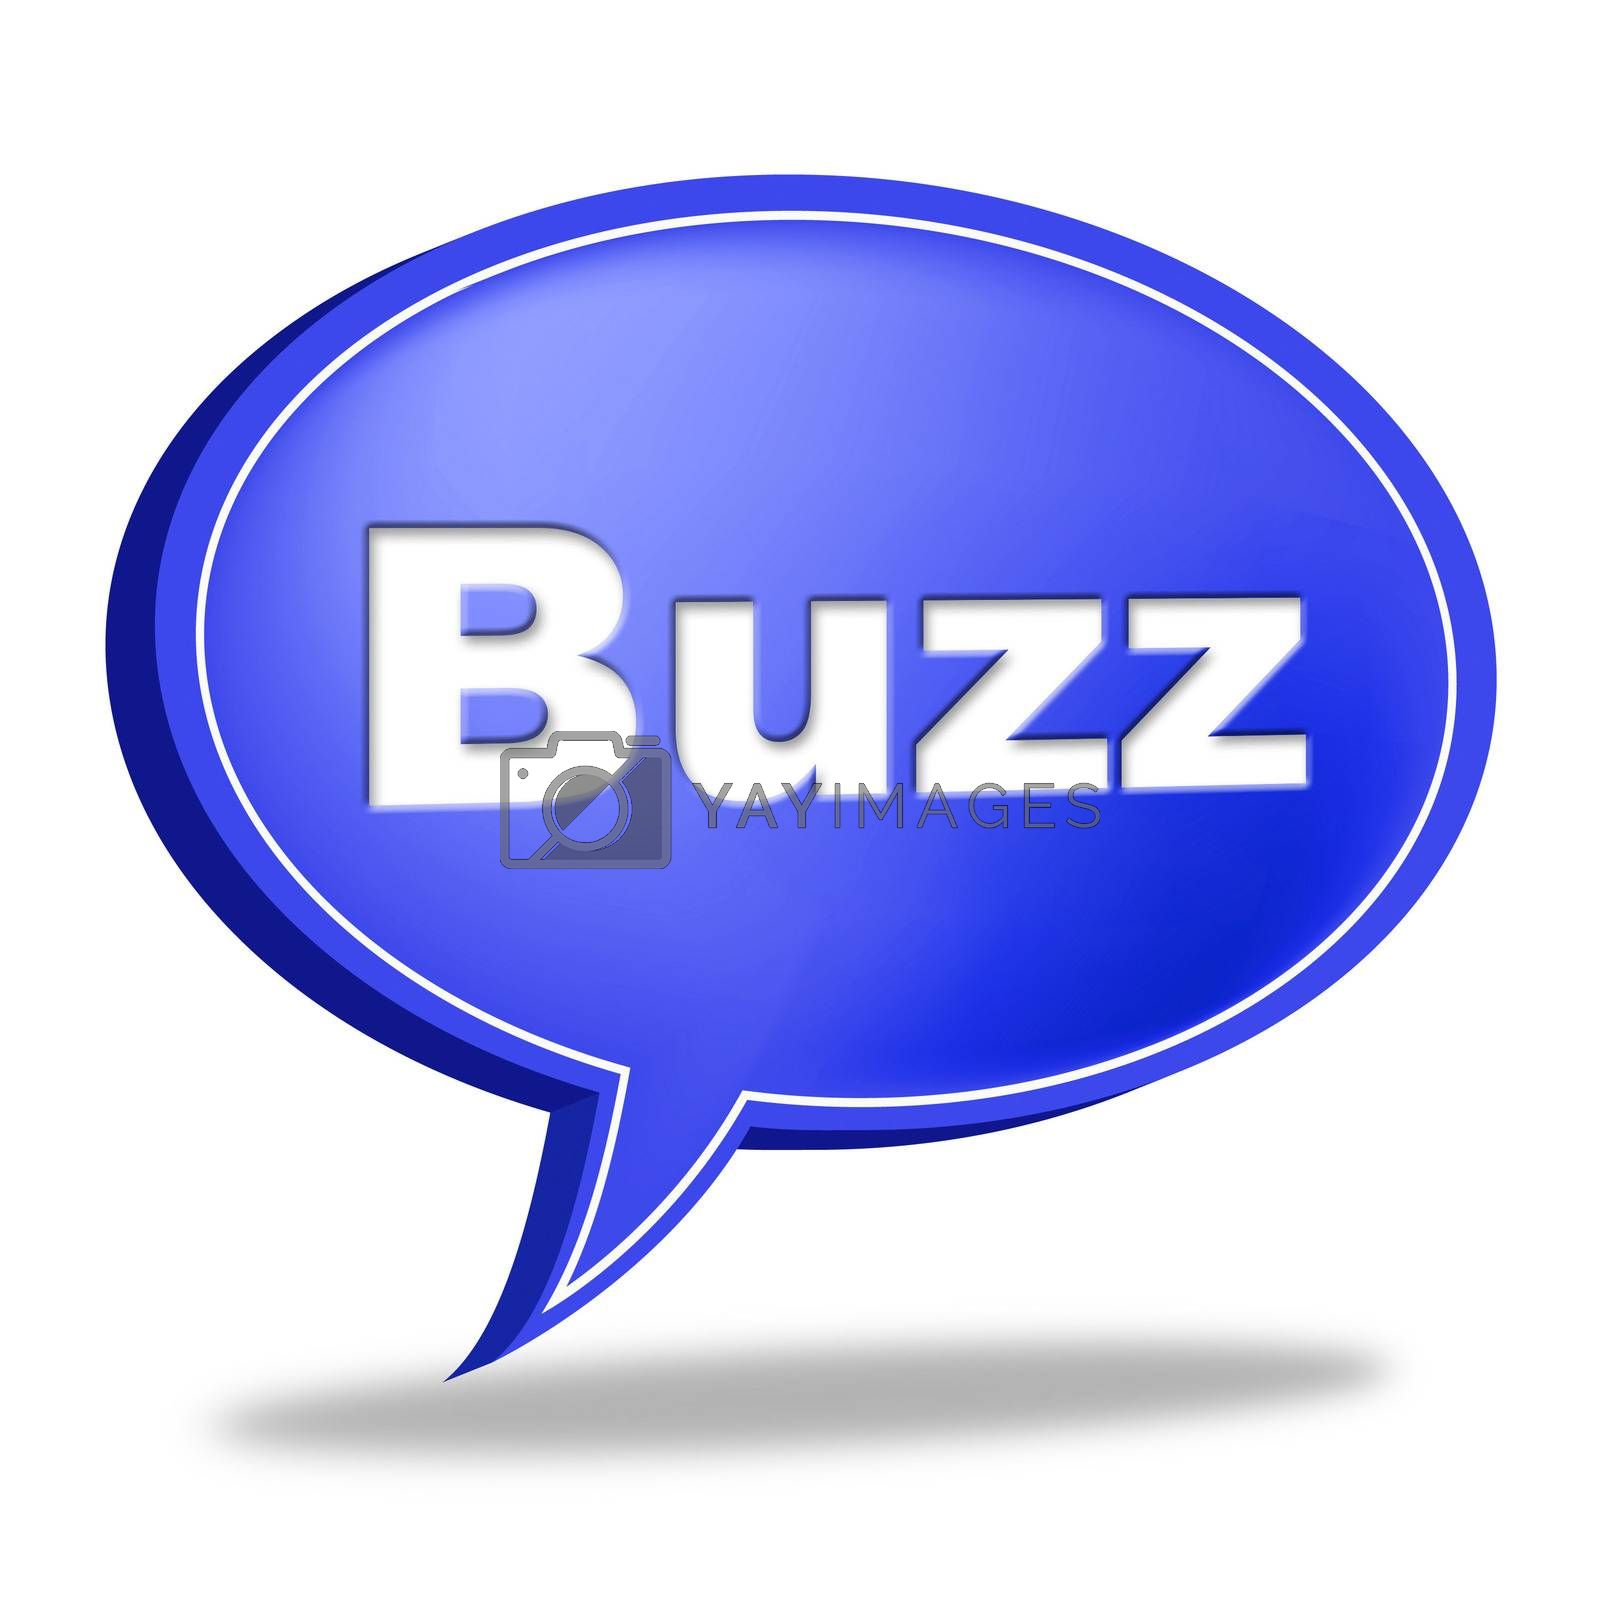 Buzz Message Represents Public Relations And Attention by stuartmiles